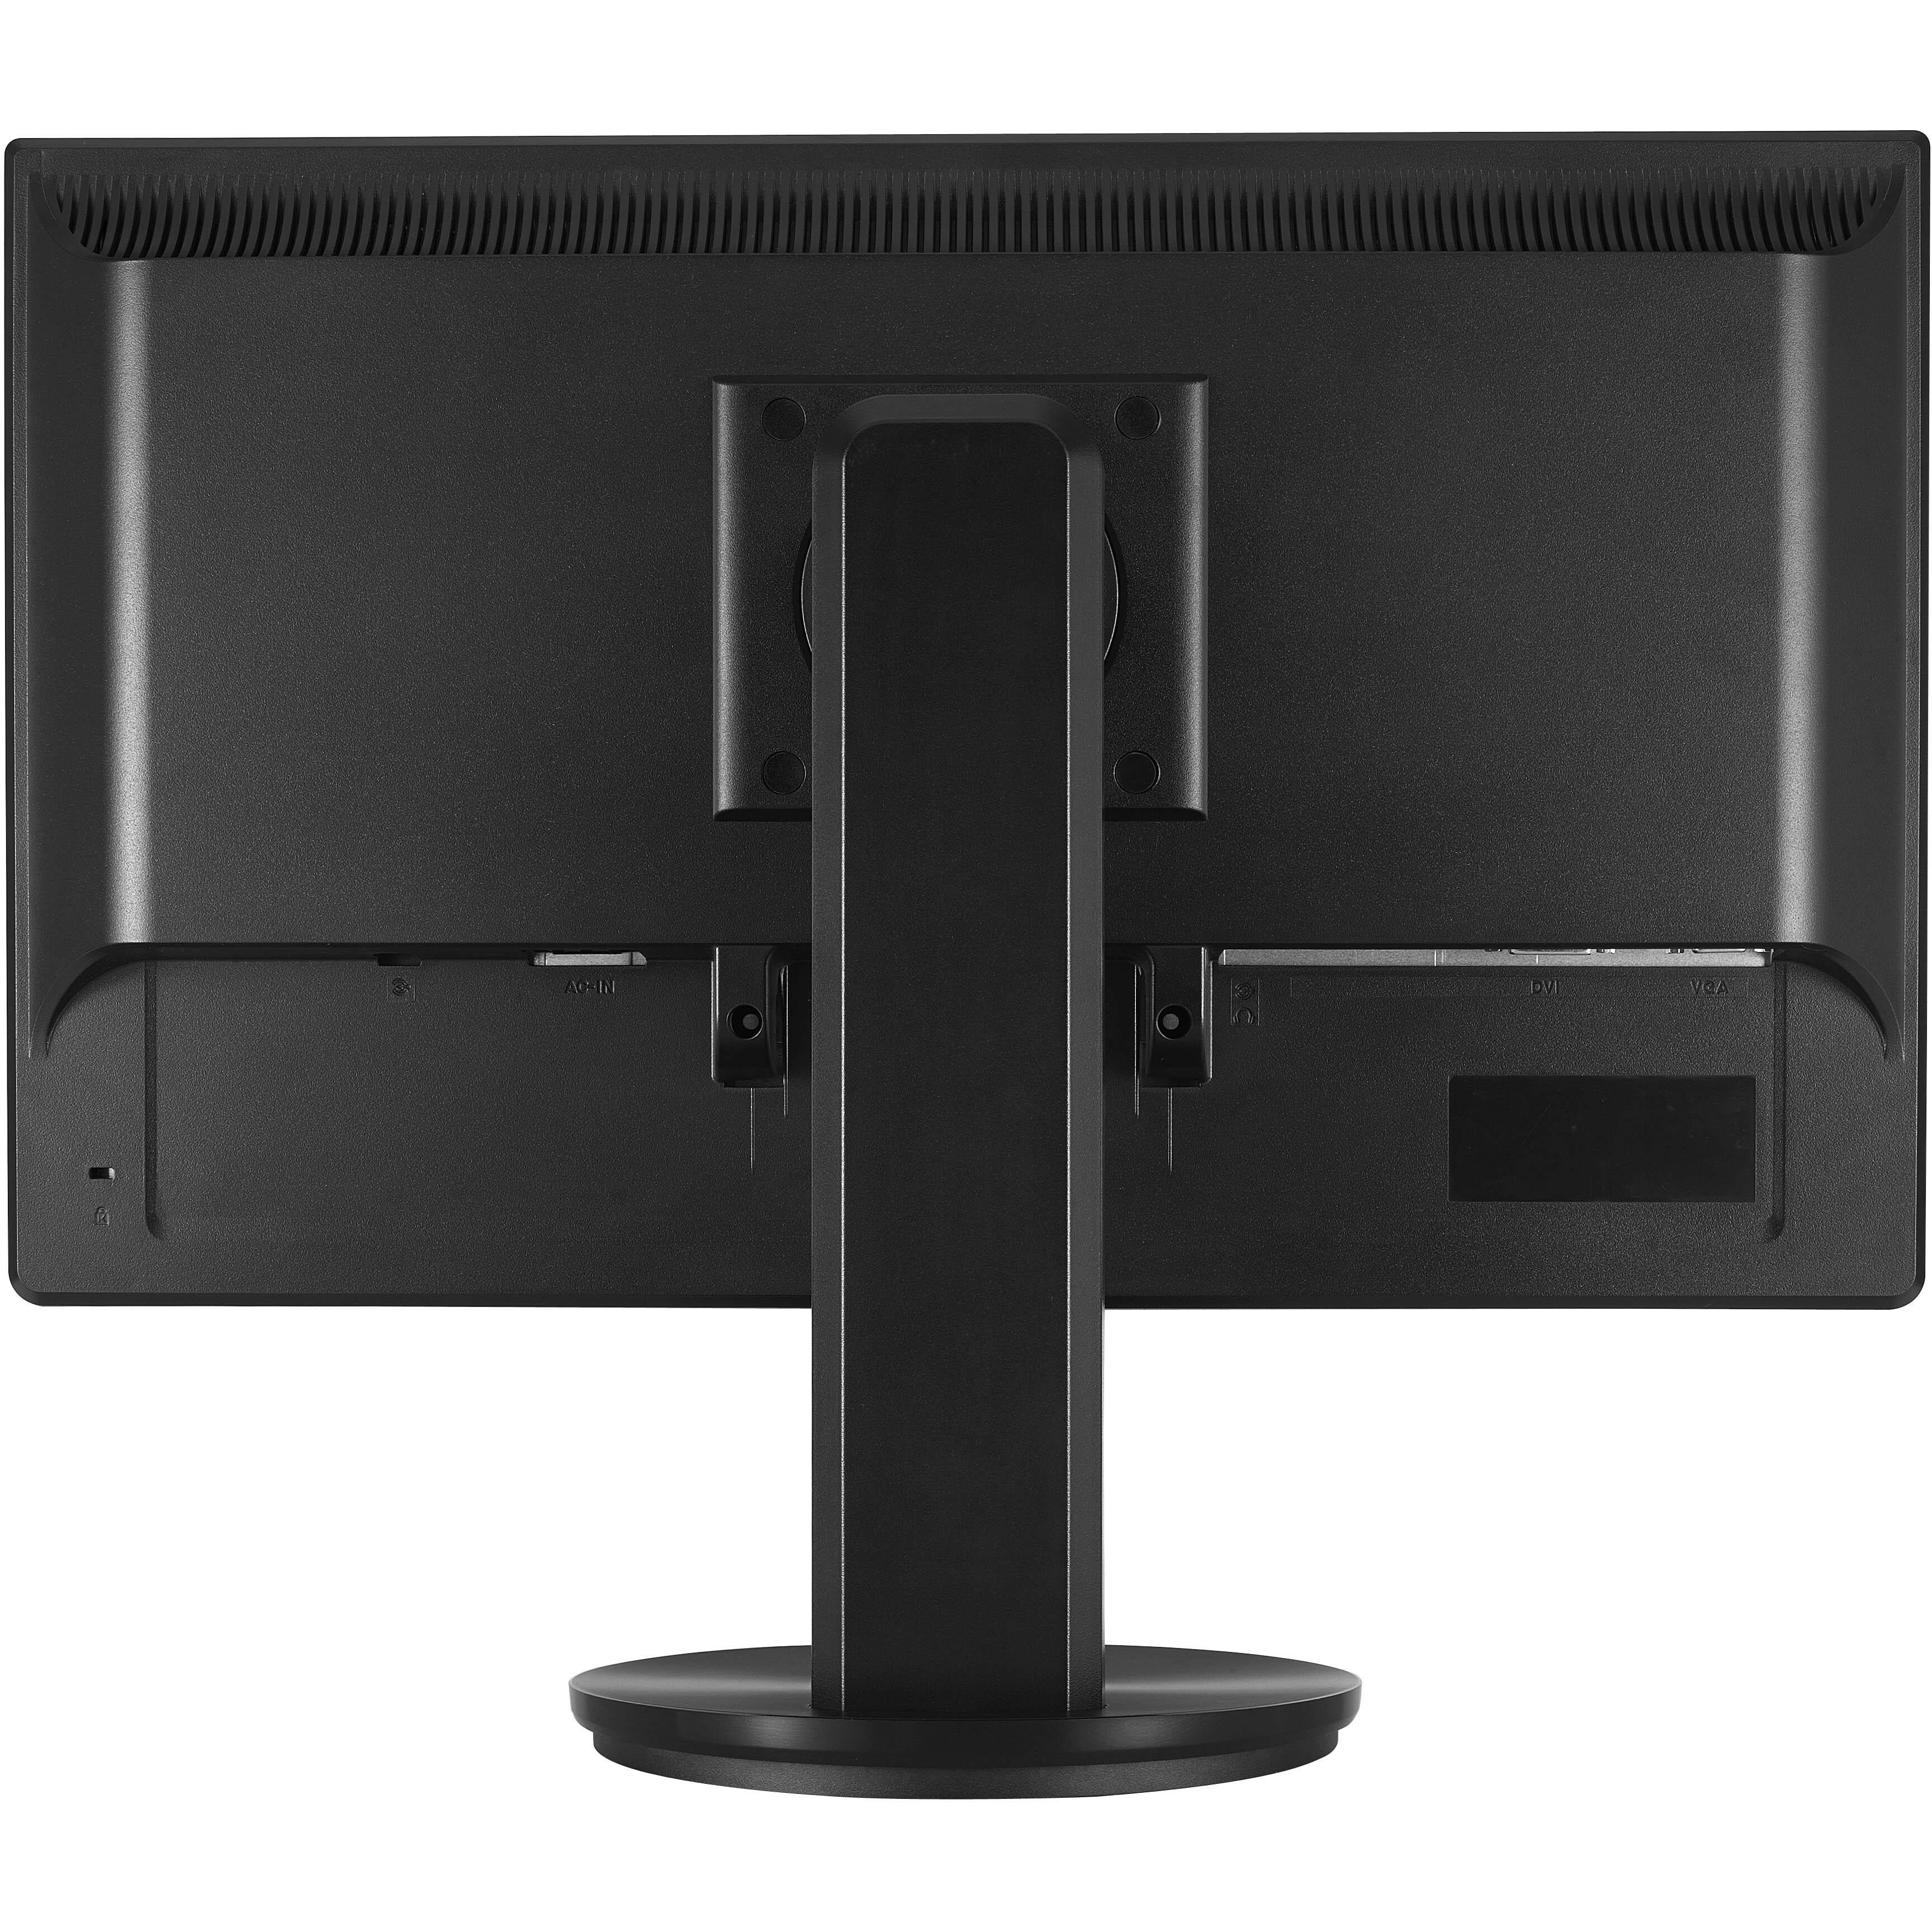 Asus VW24ATLR 61 cm 24inch LCD Monitor - 16:9 - 5 ms